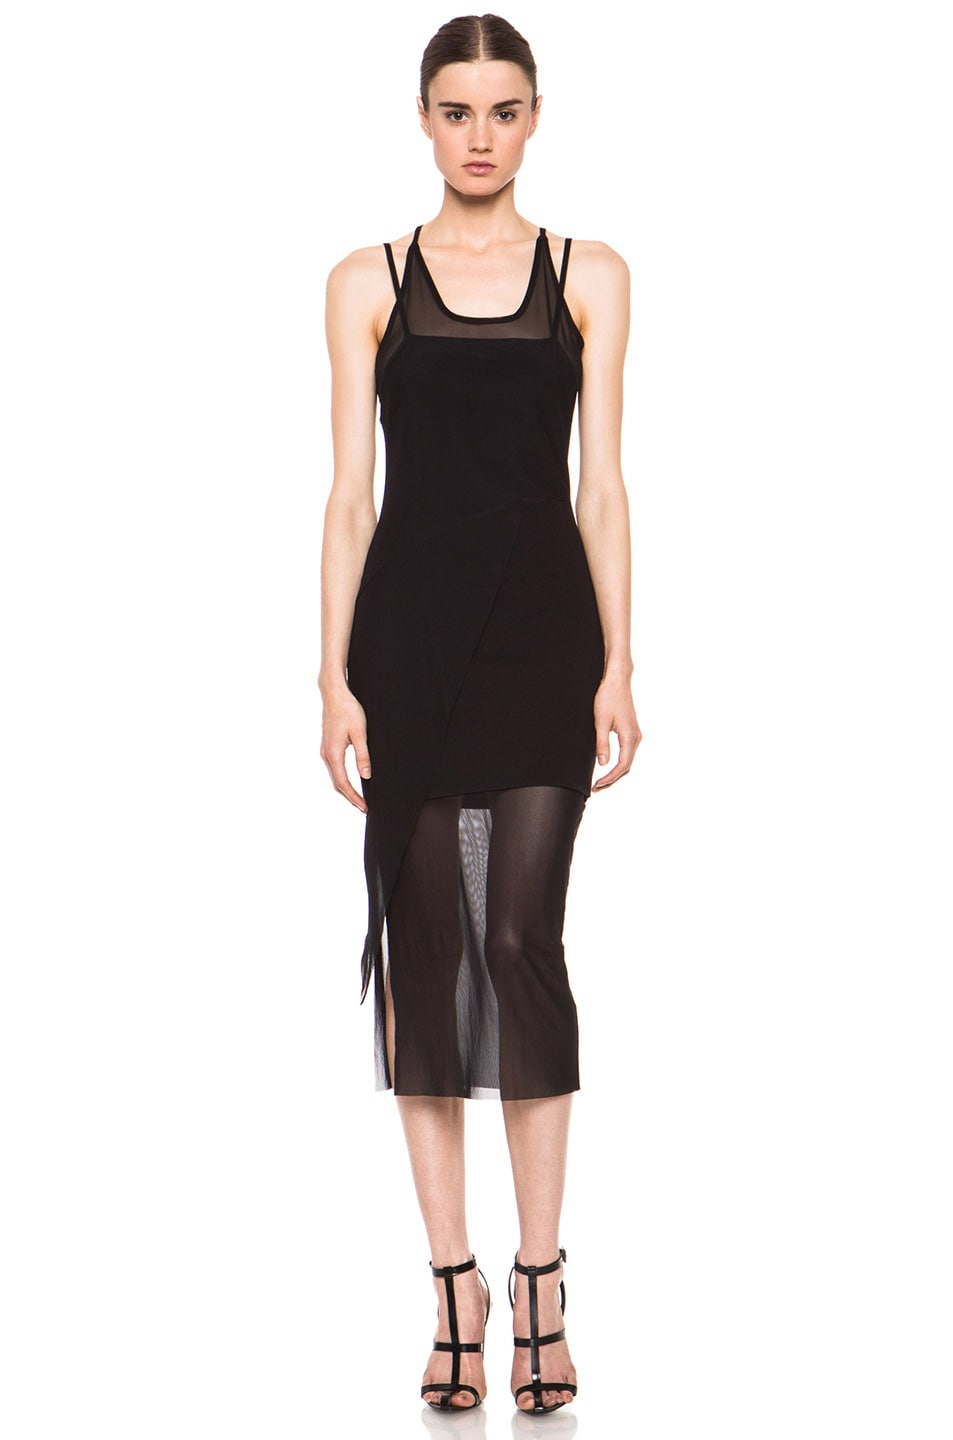 Image 1 of Kimberly Ovitz Kimek Polyamide-Blend Dress in Black